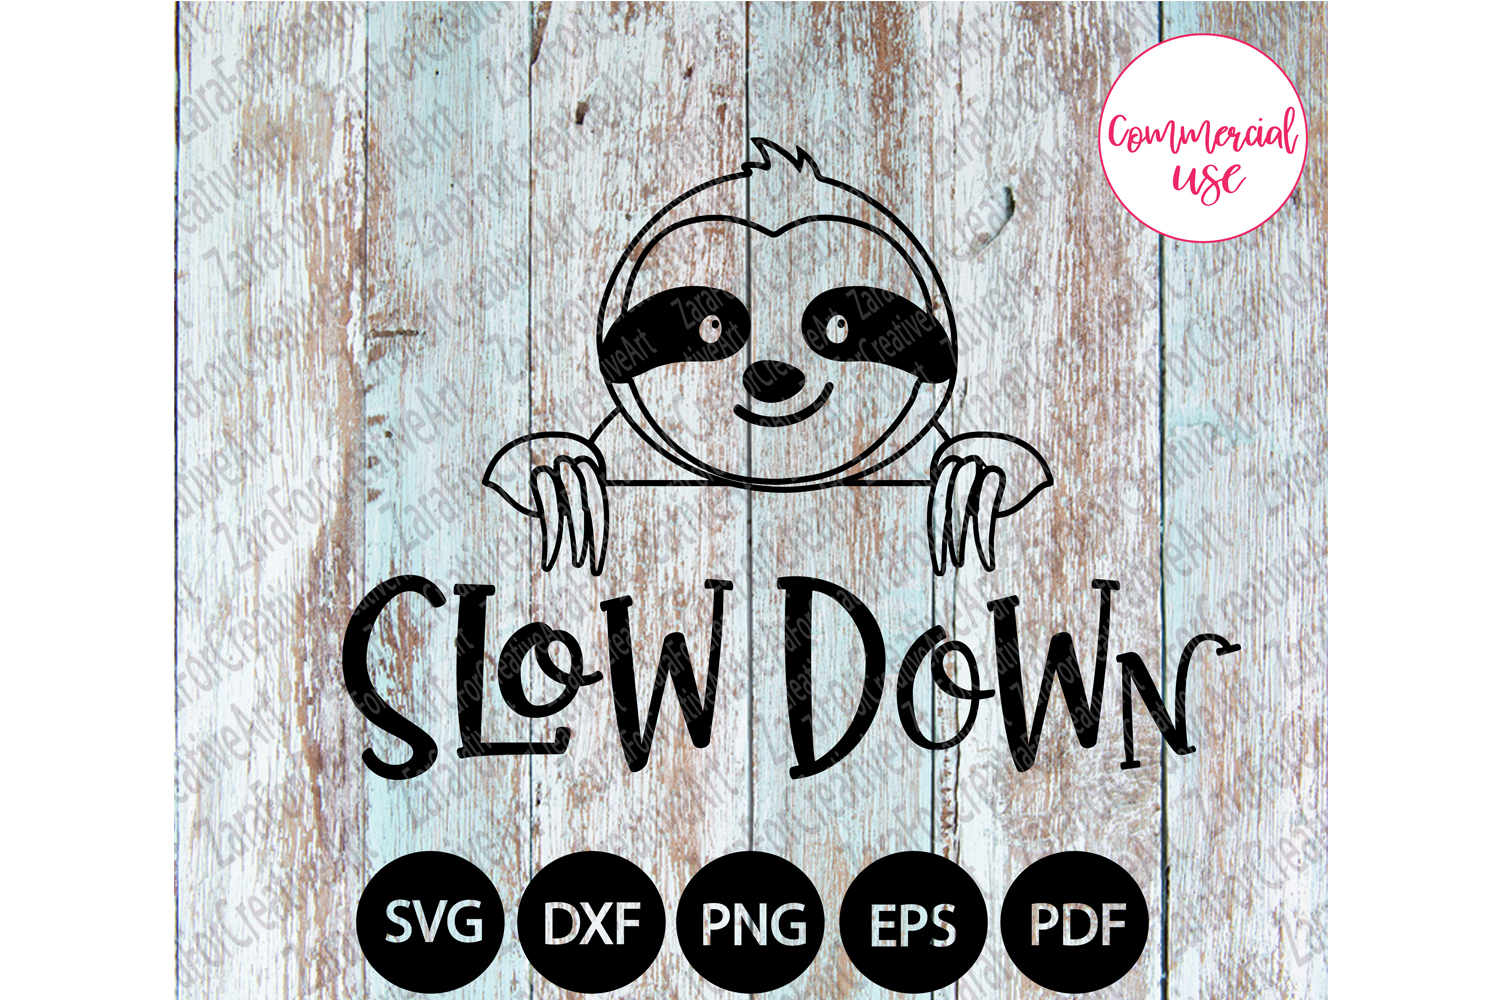 Slow down svg example image 1